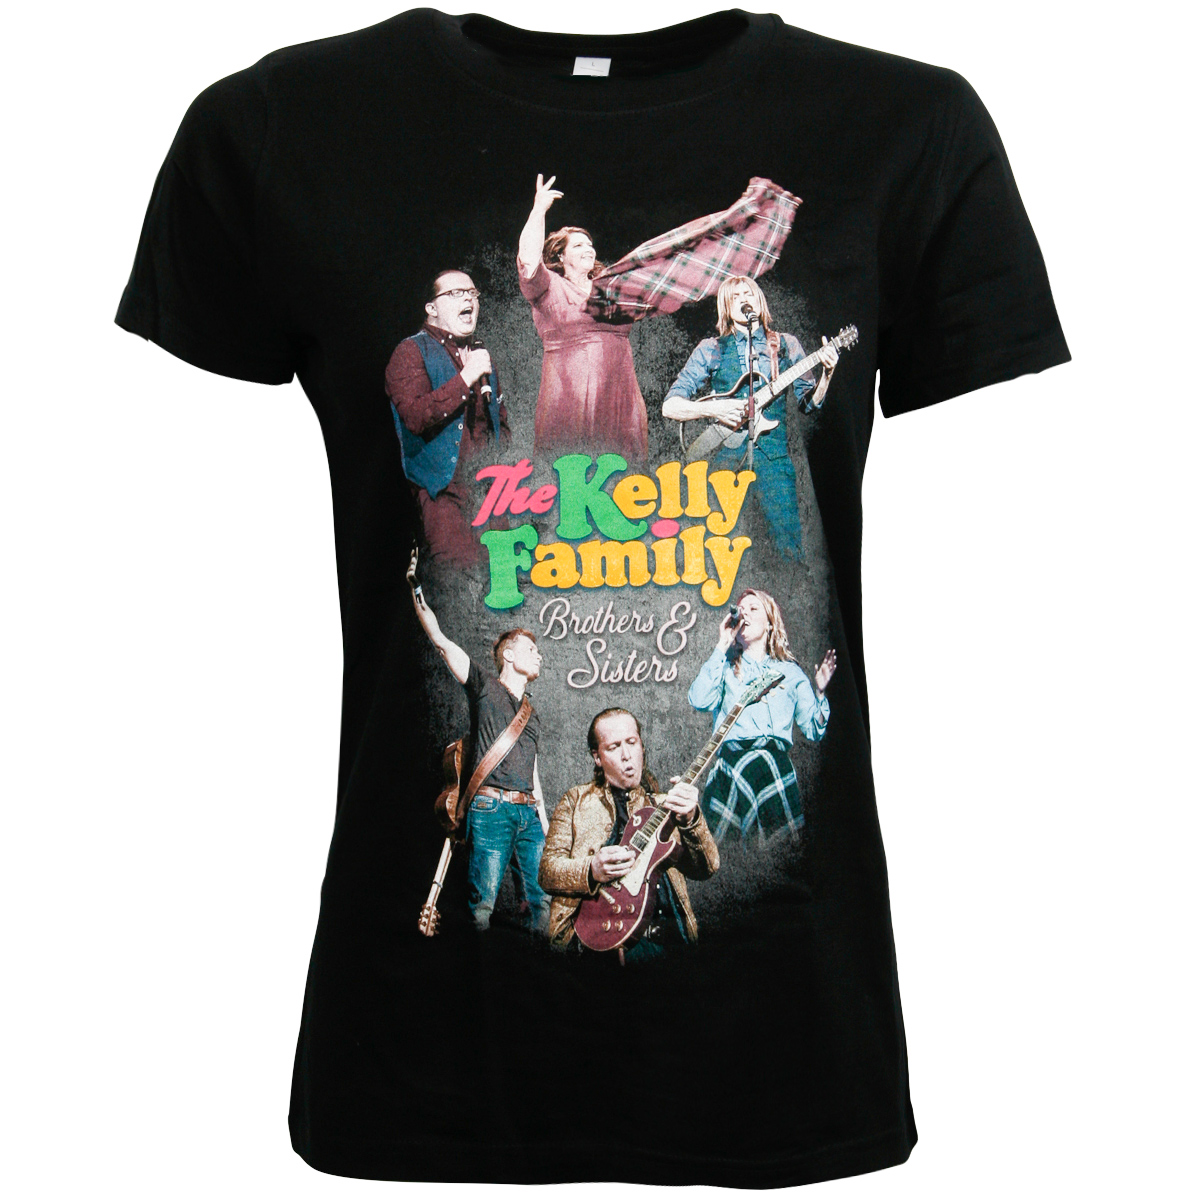 The Kelly Family - Damen T-Shirt Brothers & Sisters - schwarz